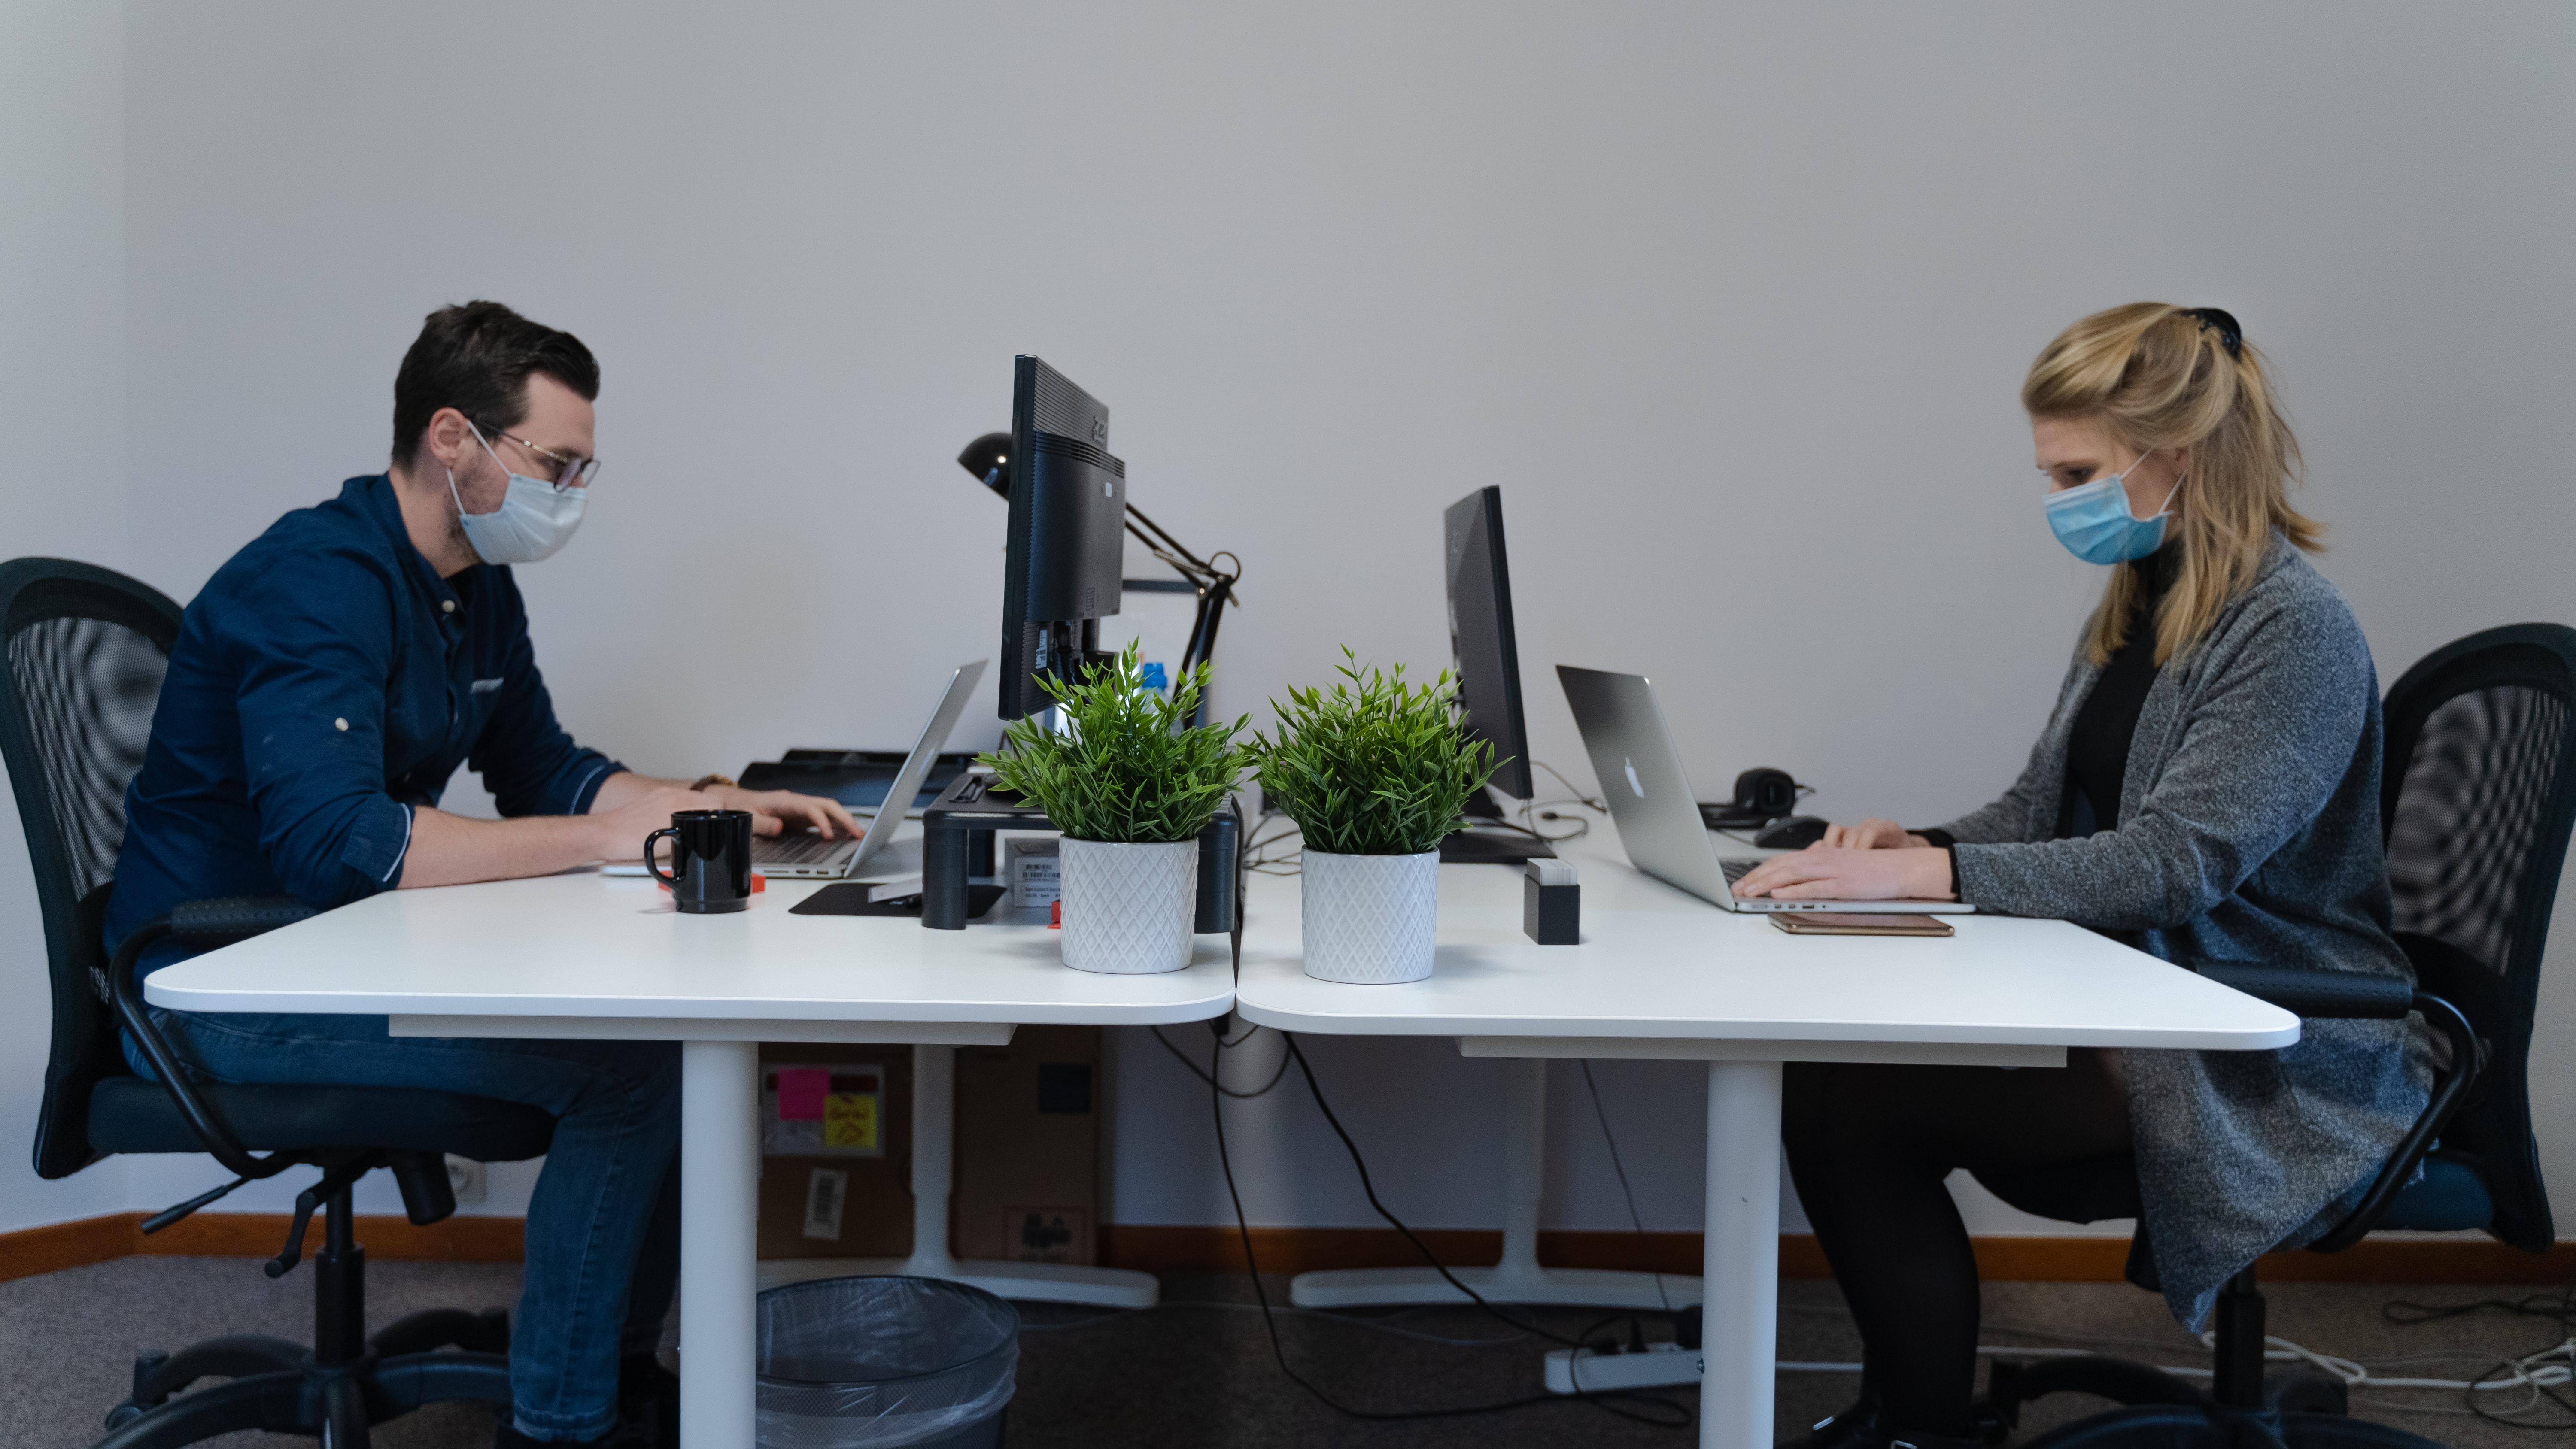 two employees with masks social distancing in office